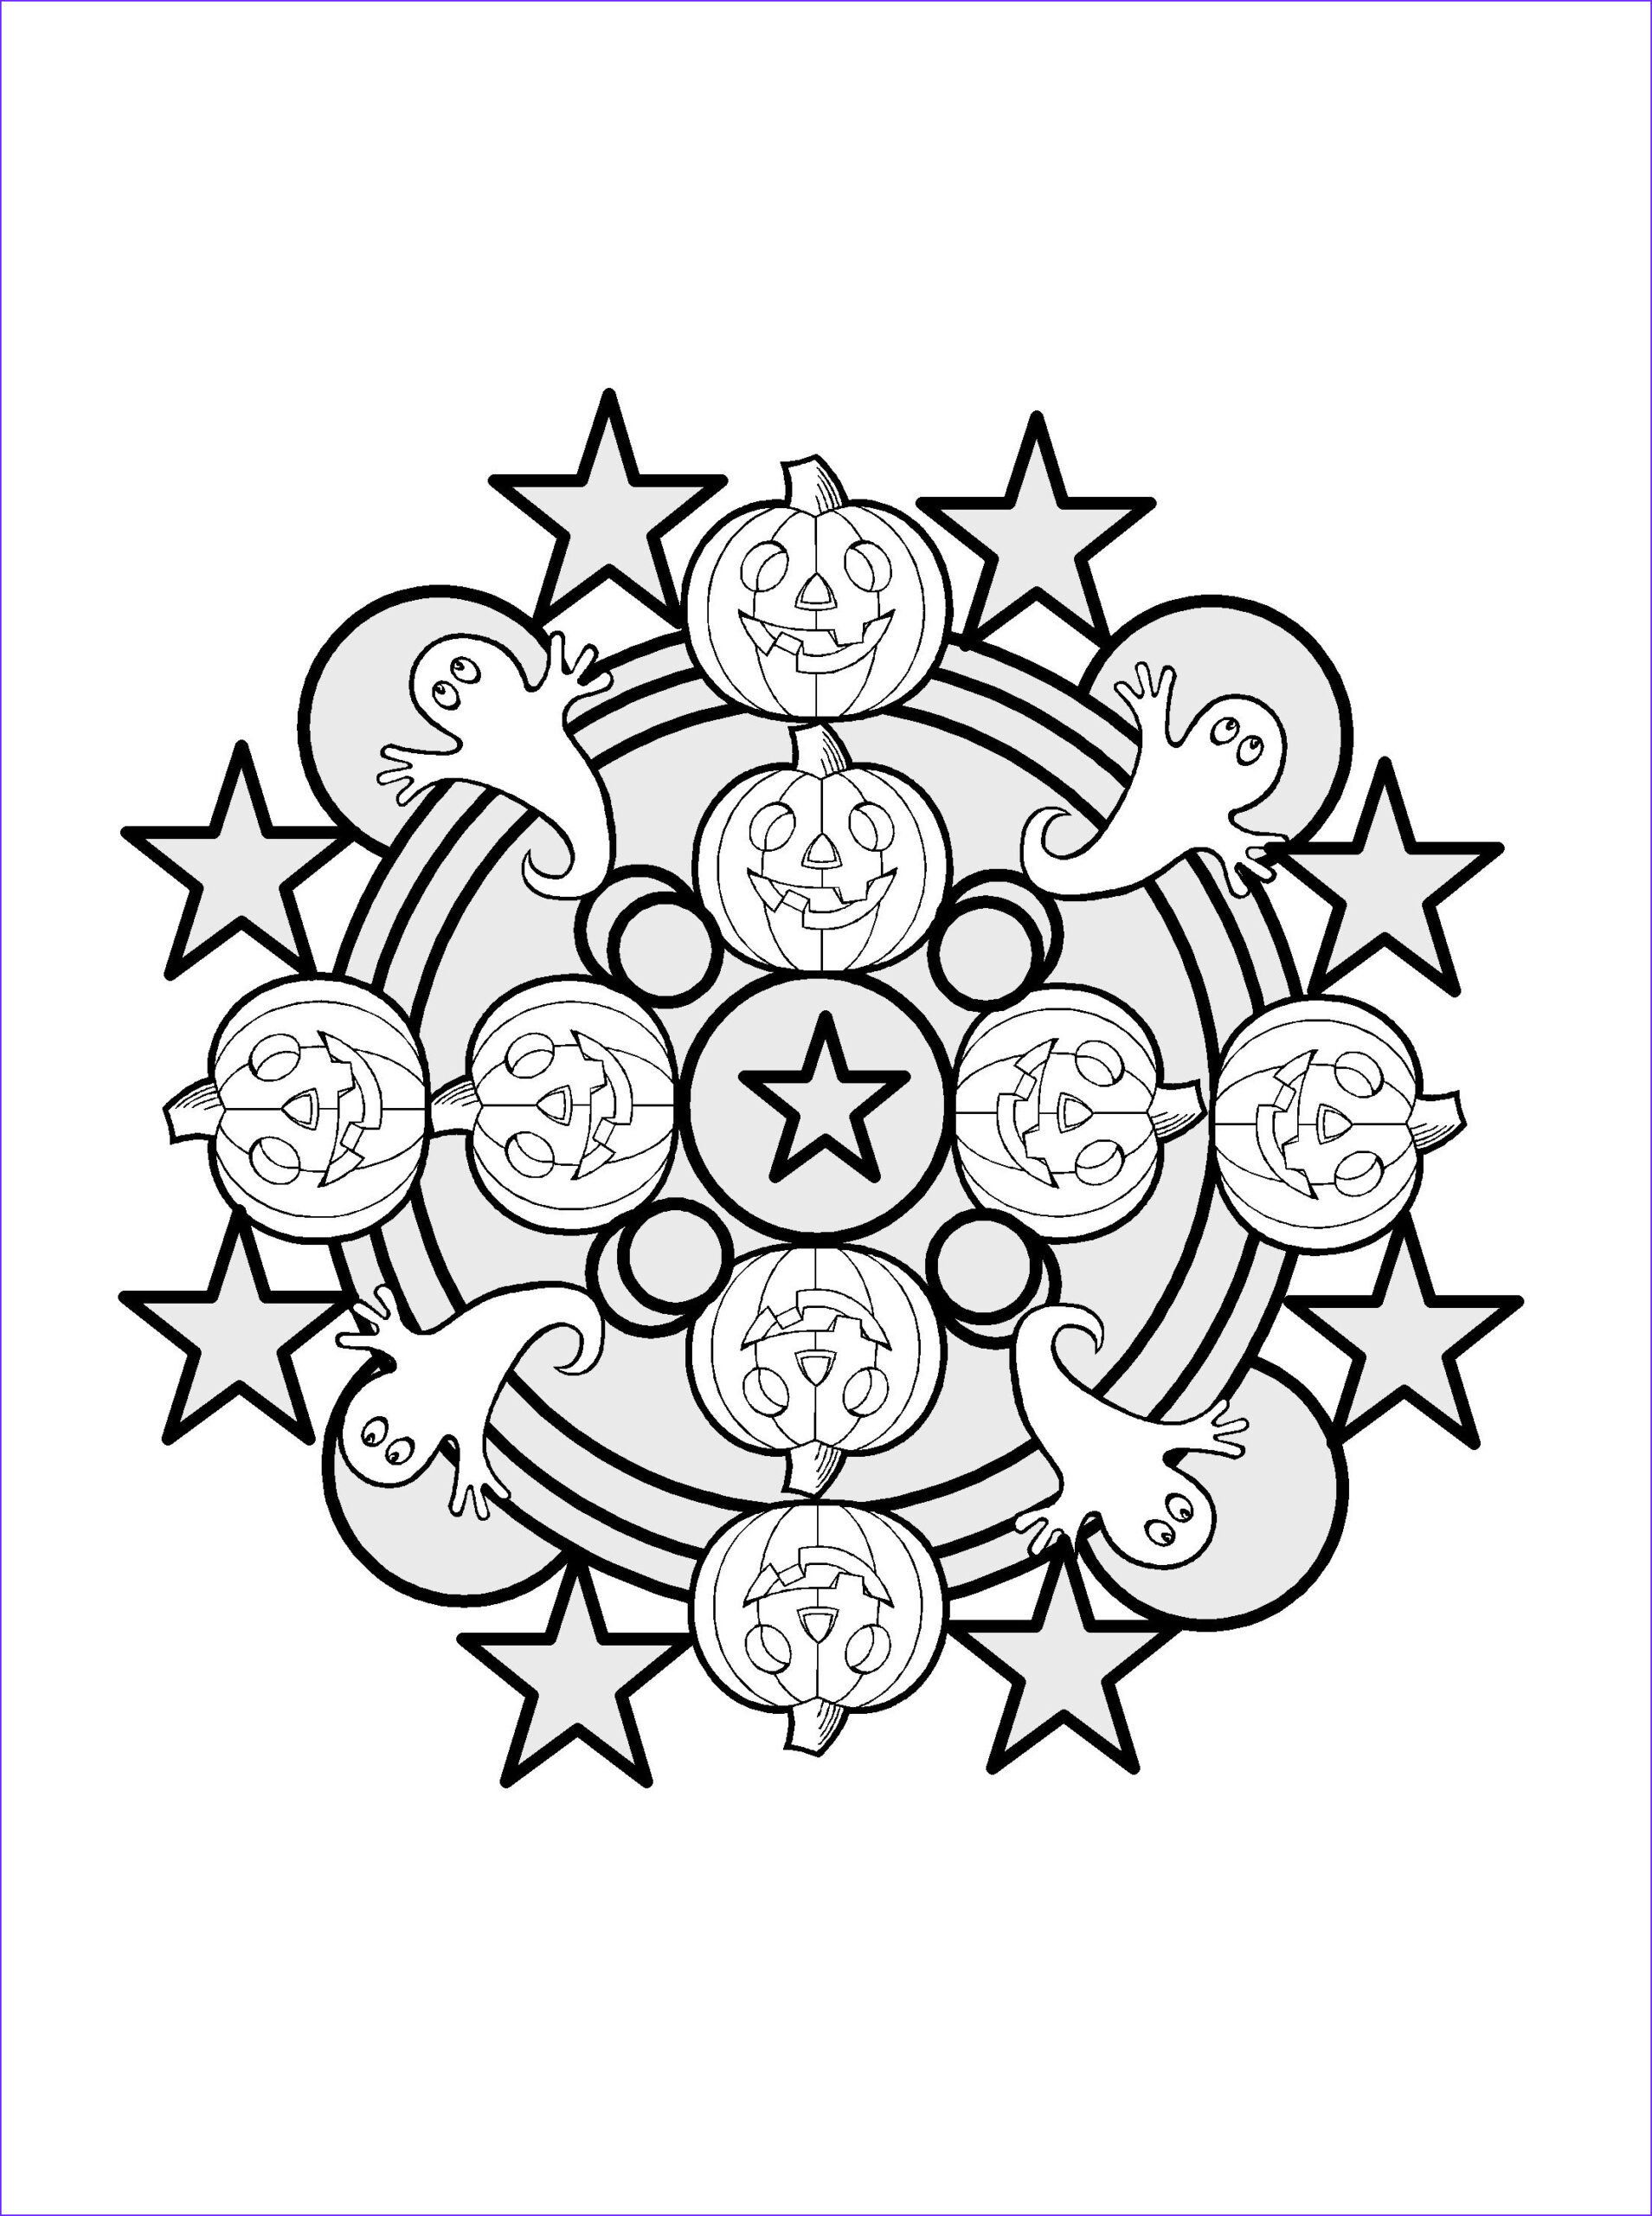 Halloween Mandala Coloring Pages Cool Collection Easy Halloween Mandala to Colour